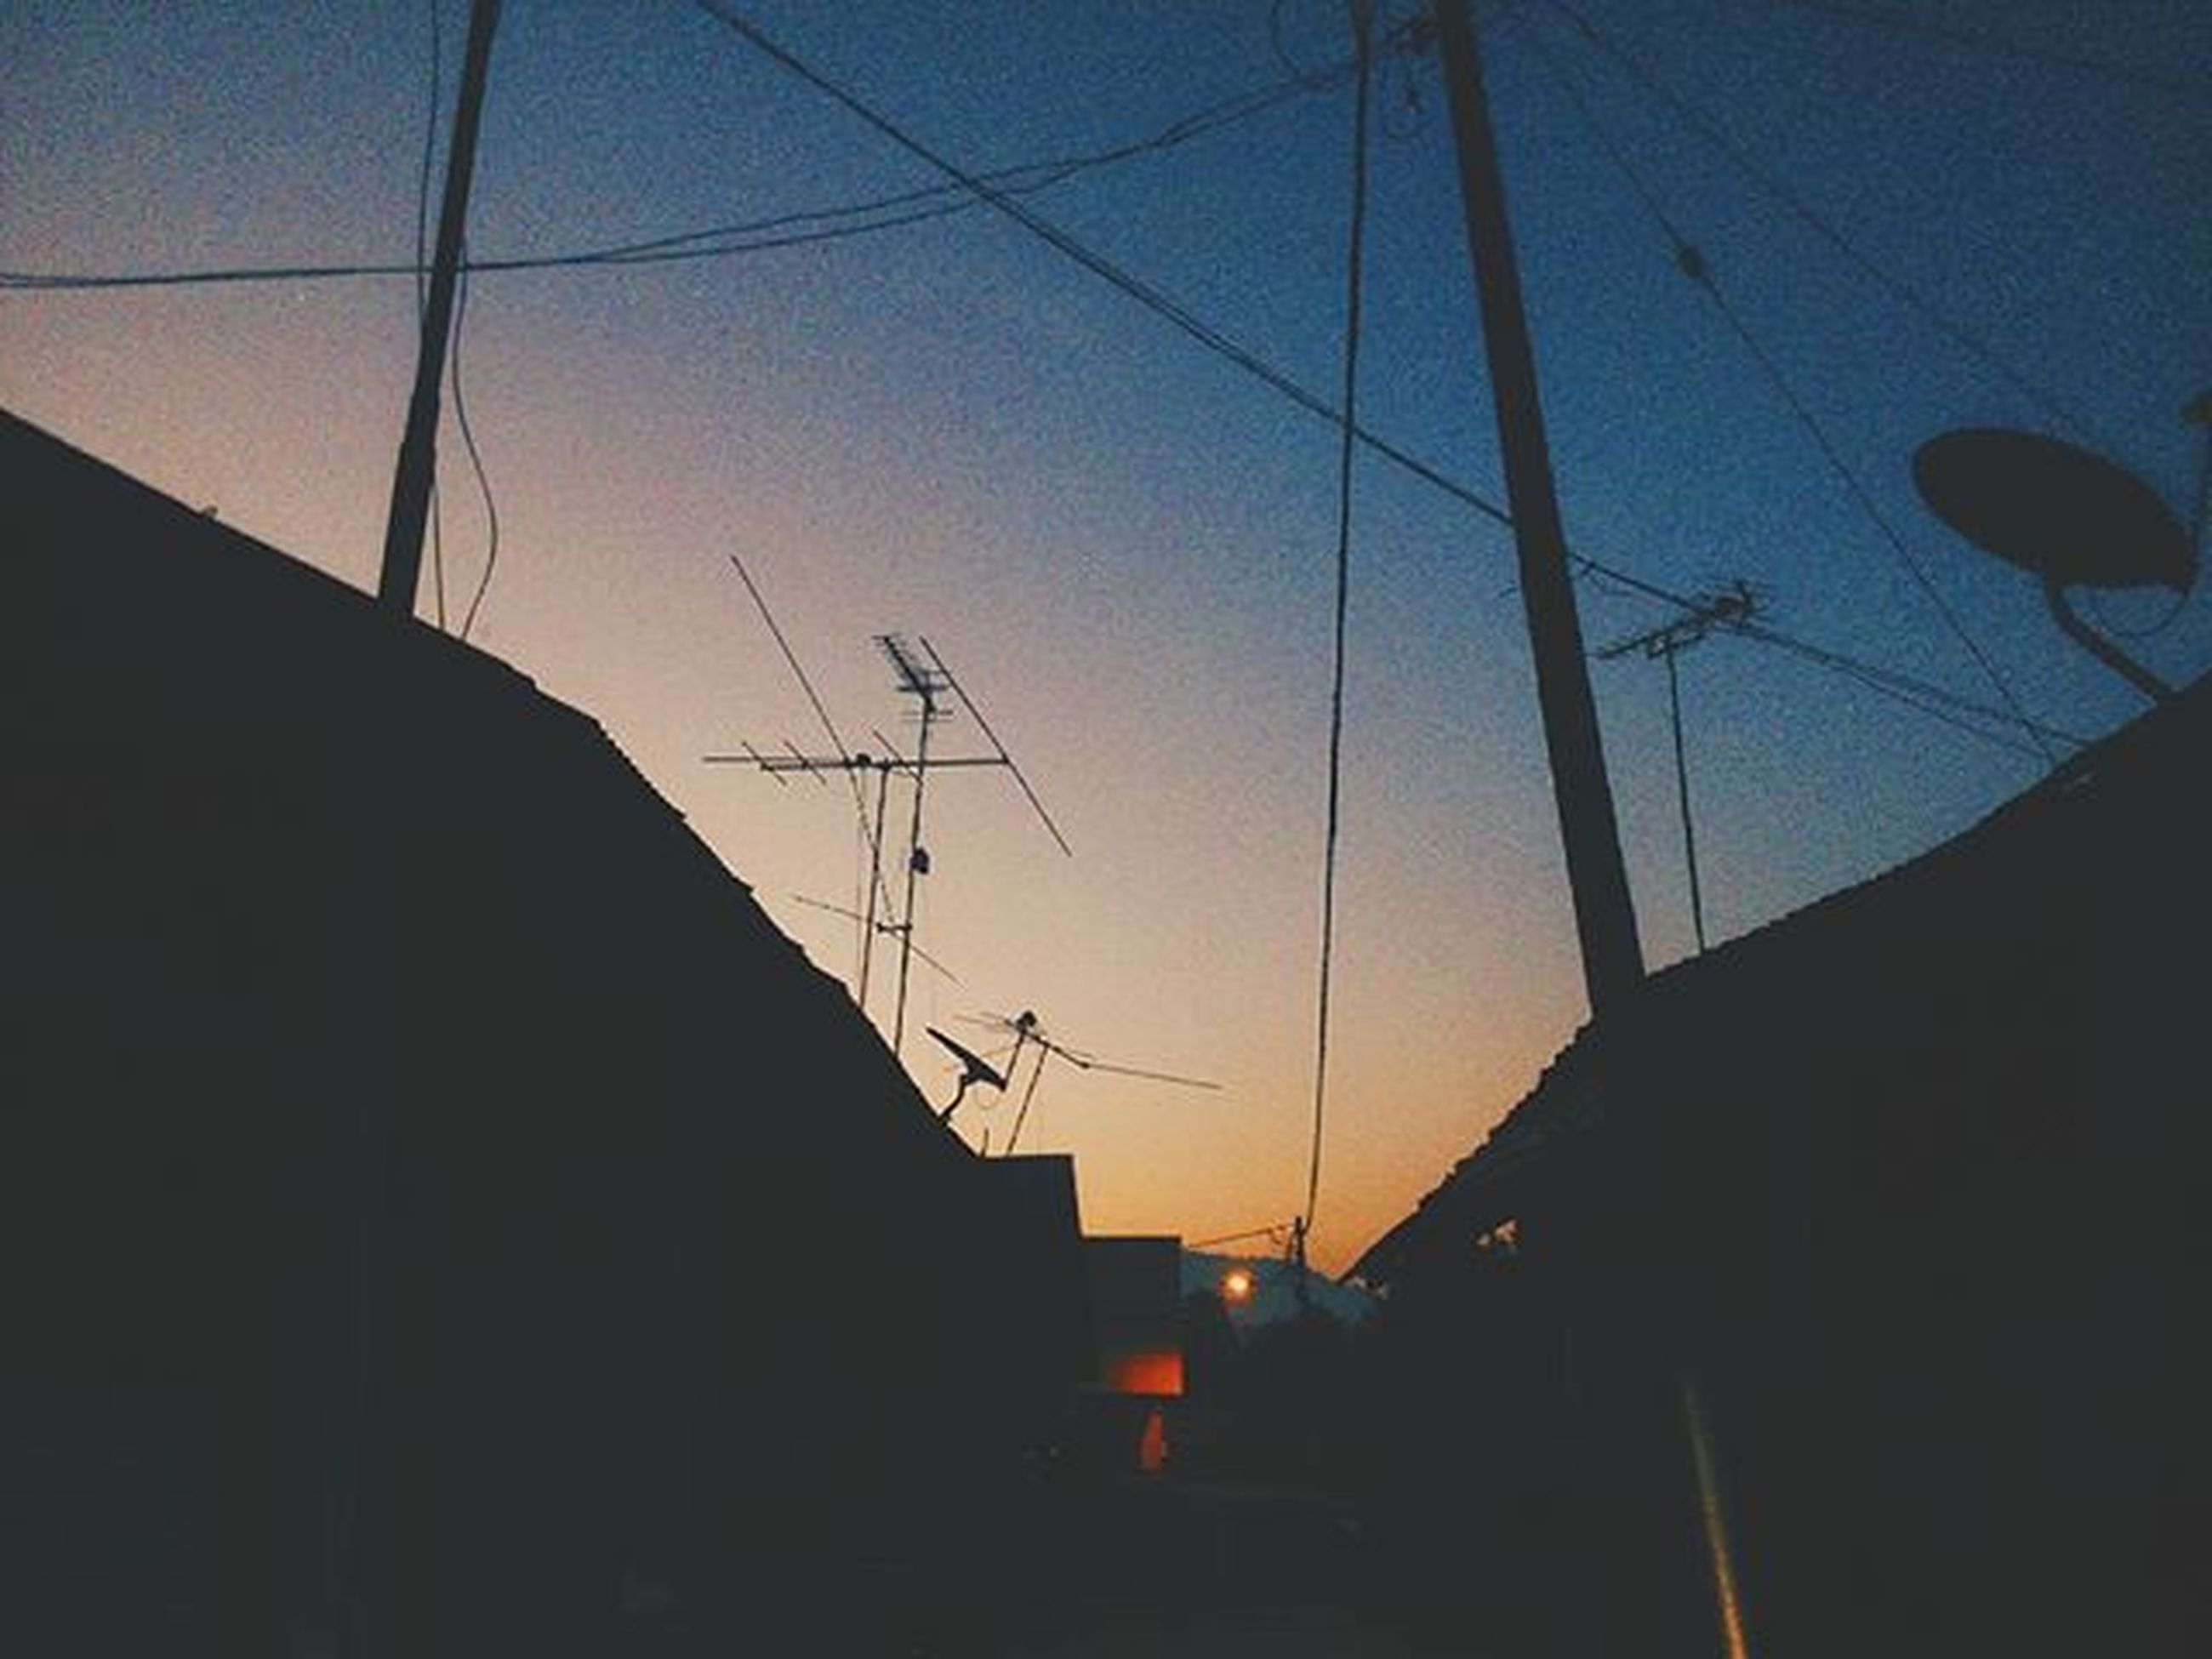 building exterior, built structure, architecture, sunset, power line, silhouette, low angle view, sky, electricity pylon, cable, electricity, house, dusk, transportation, power supply, residential structure, building, outdoors, street light, clear sky